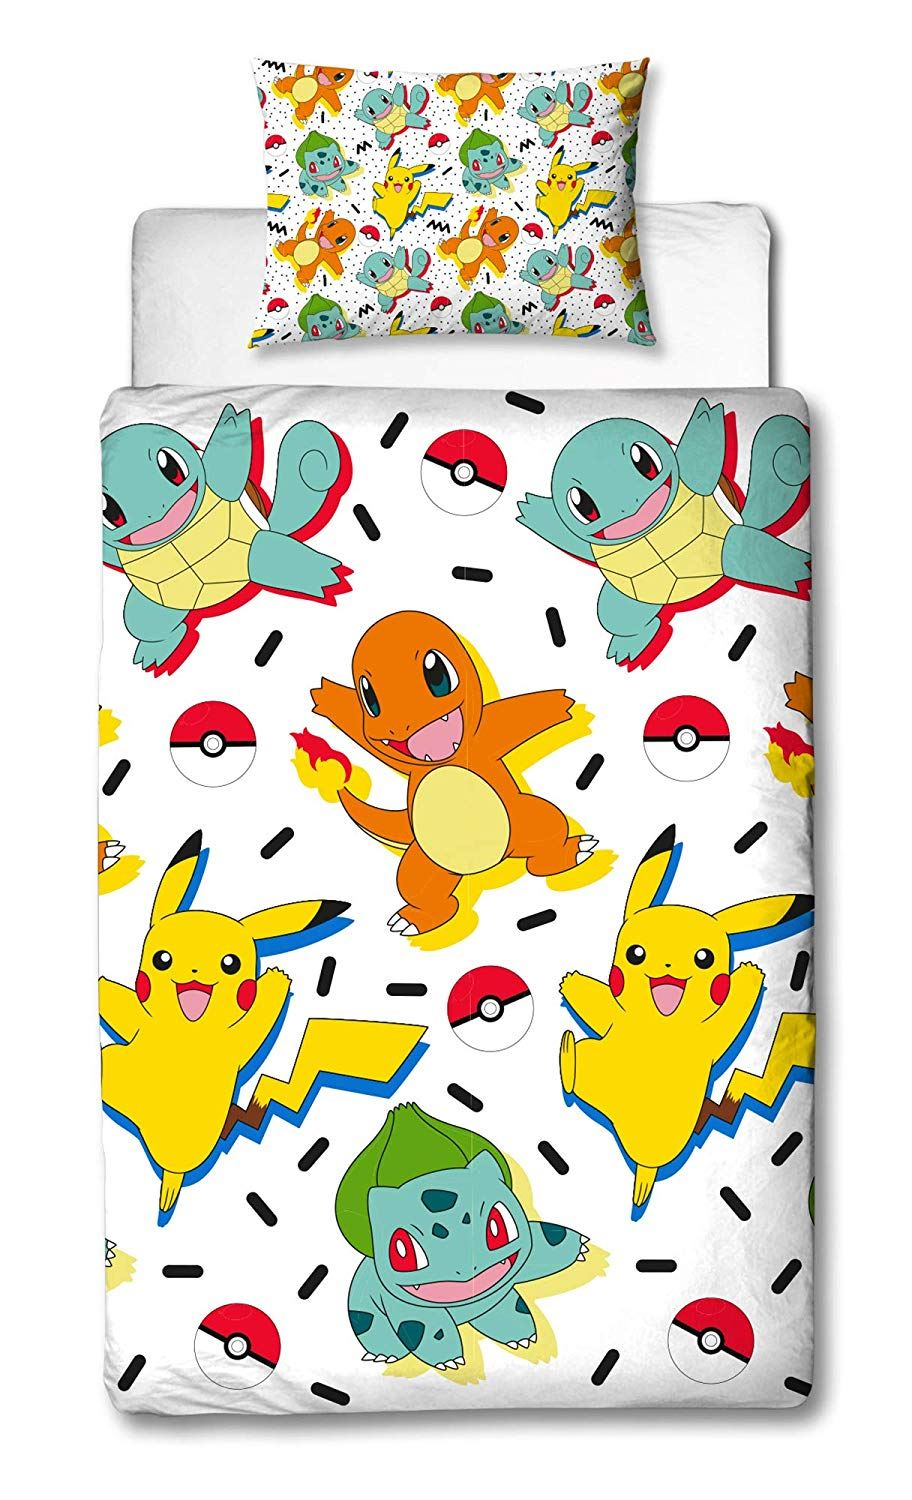 Toy Story Bettwäsche Pokemon Bettwäsche Pikachu Pokeball Bettdecken Handtuch